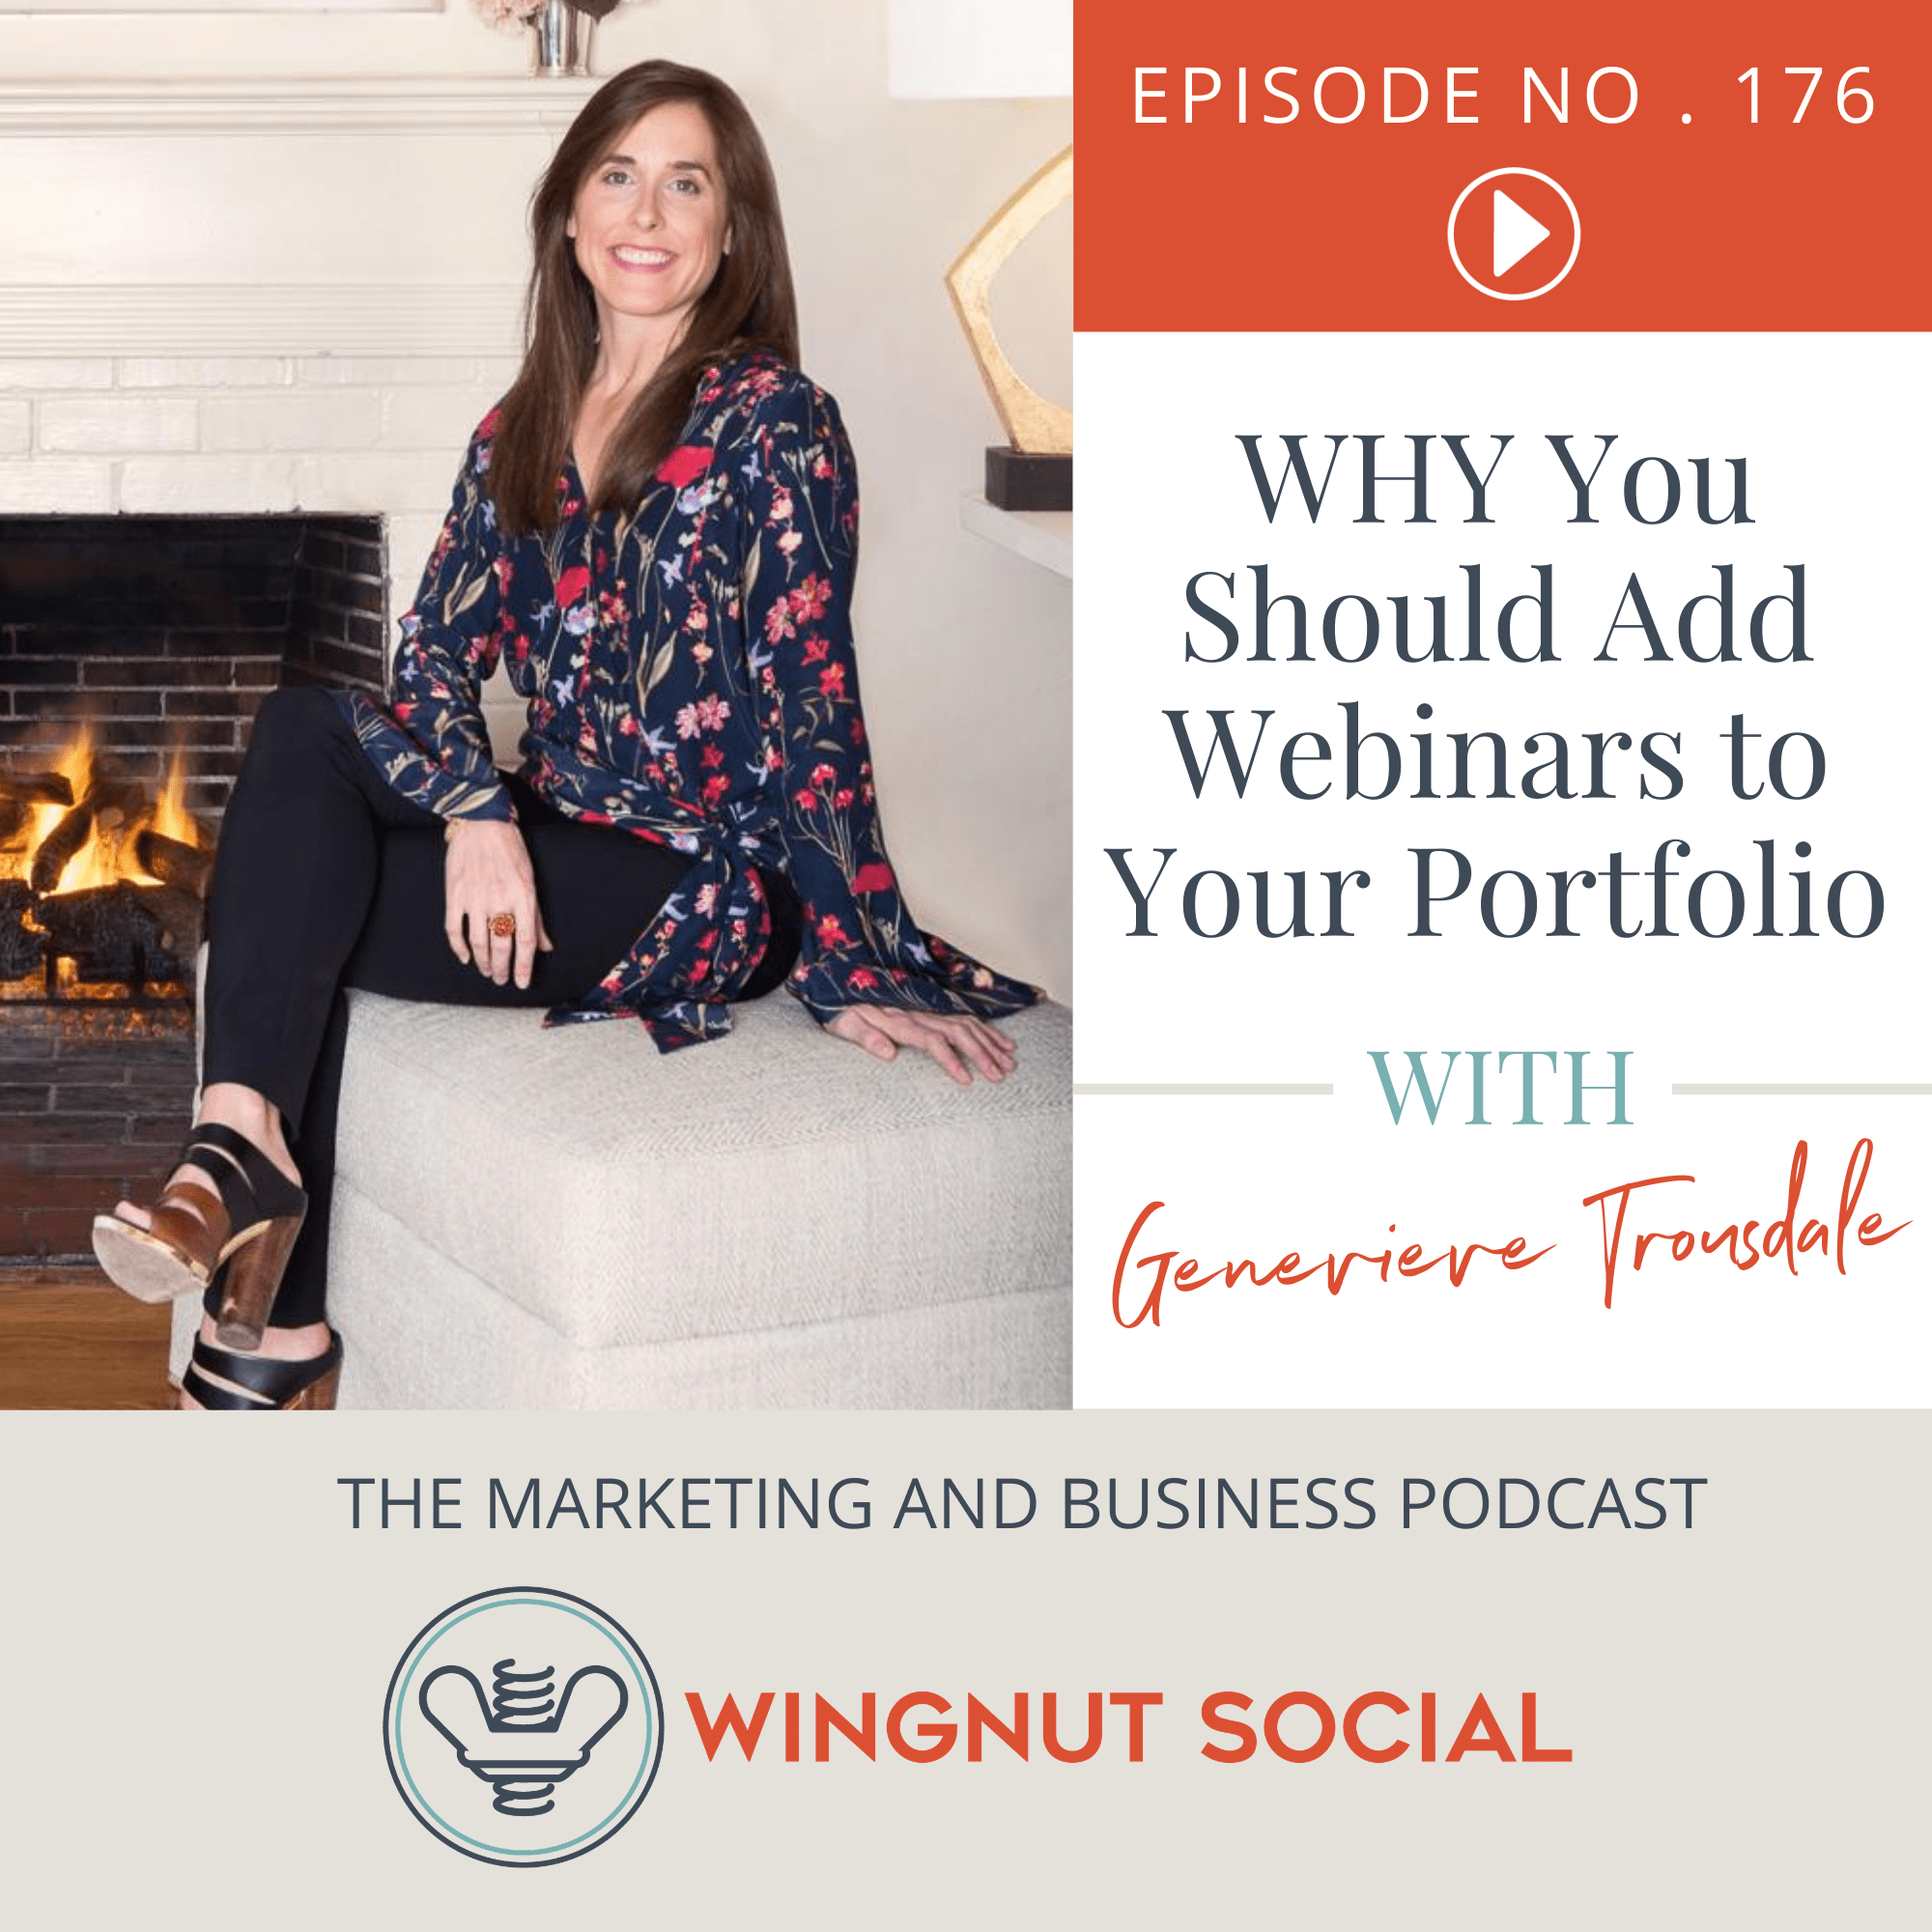 Genevieve Trousdale Shares WHY You Should Add Webinars to Your Portfolio - Episode 176